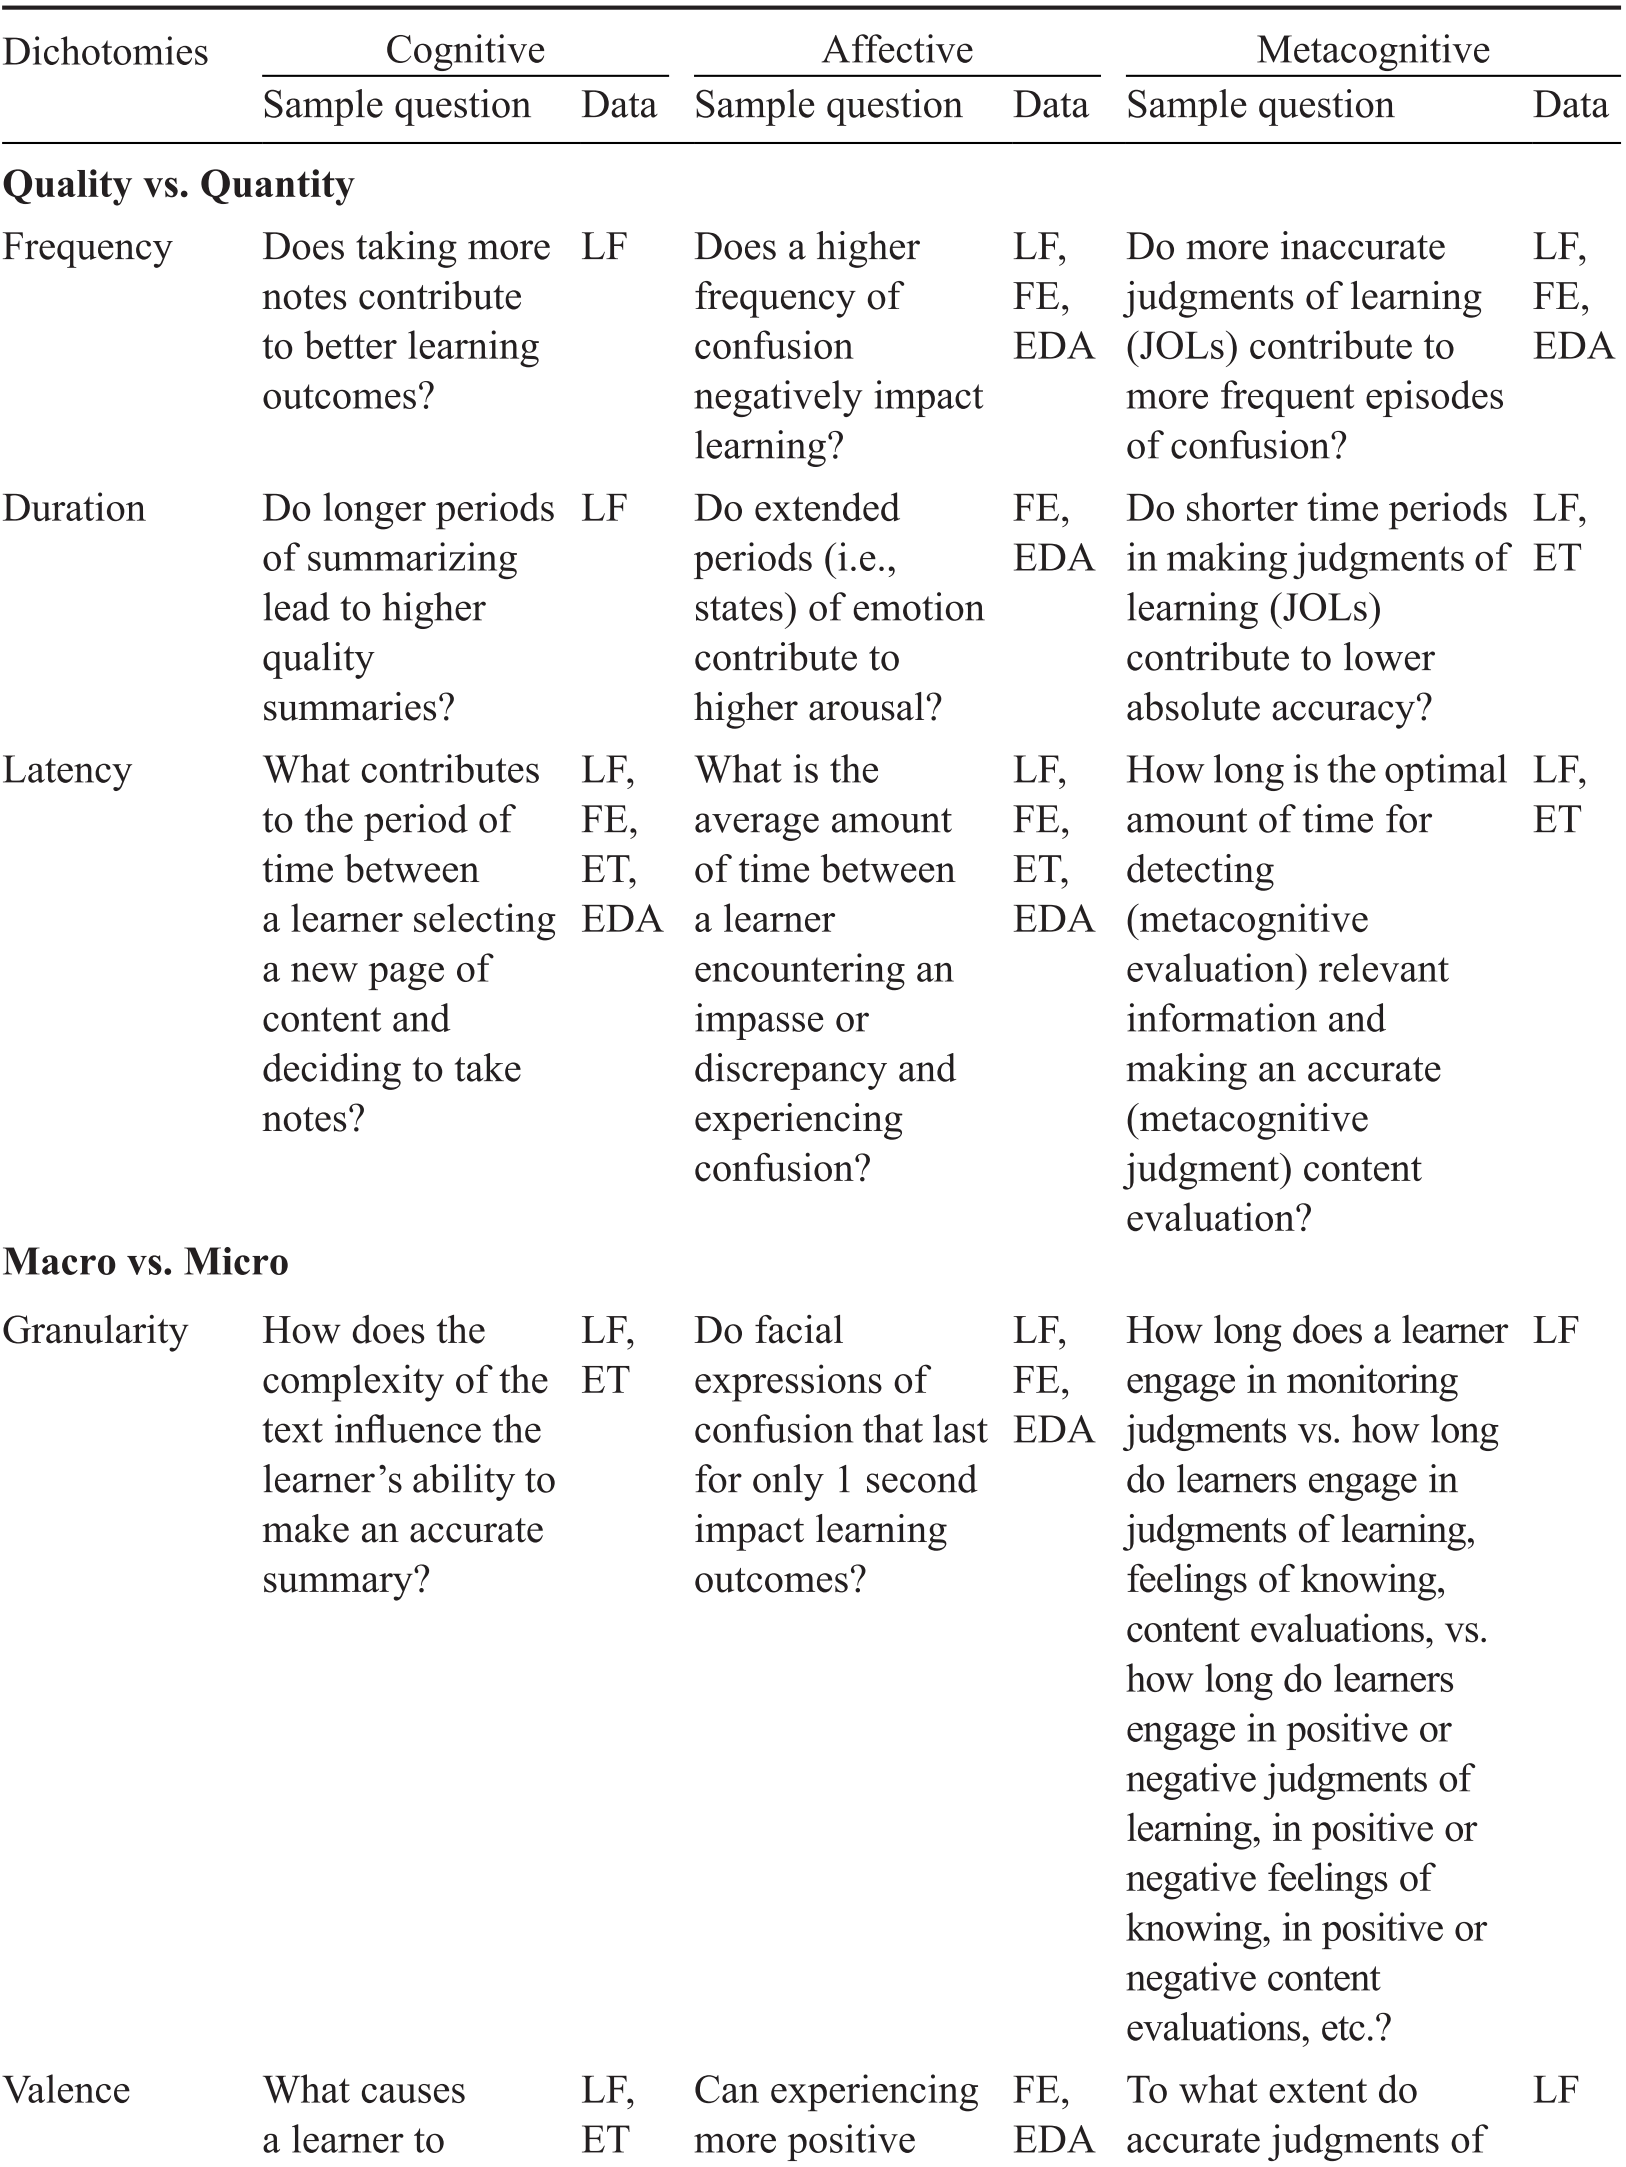 Metacognition (Part V) - The Cambridge Handbook of Cognition and Education [ 2167 x 1626 Pixel ]